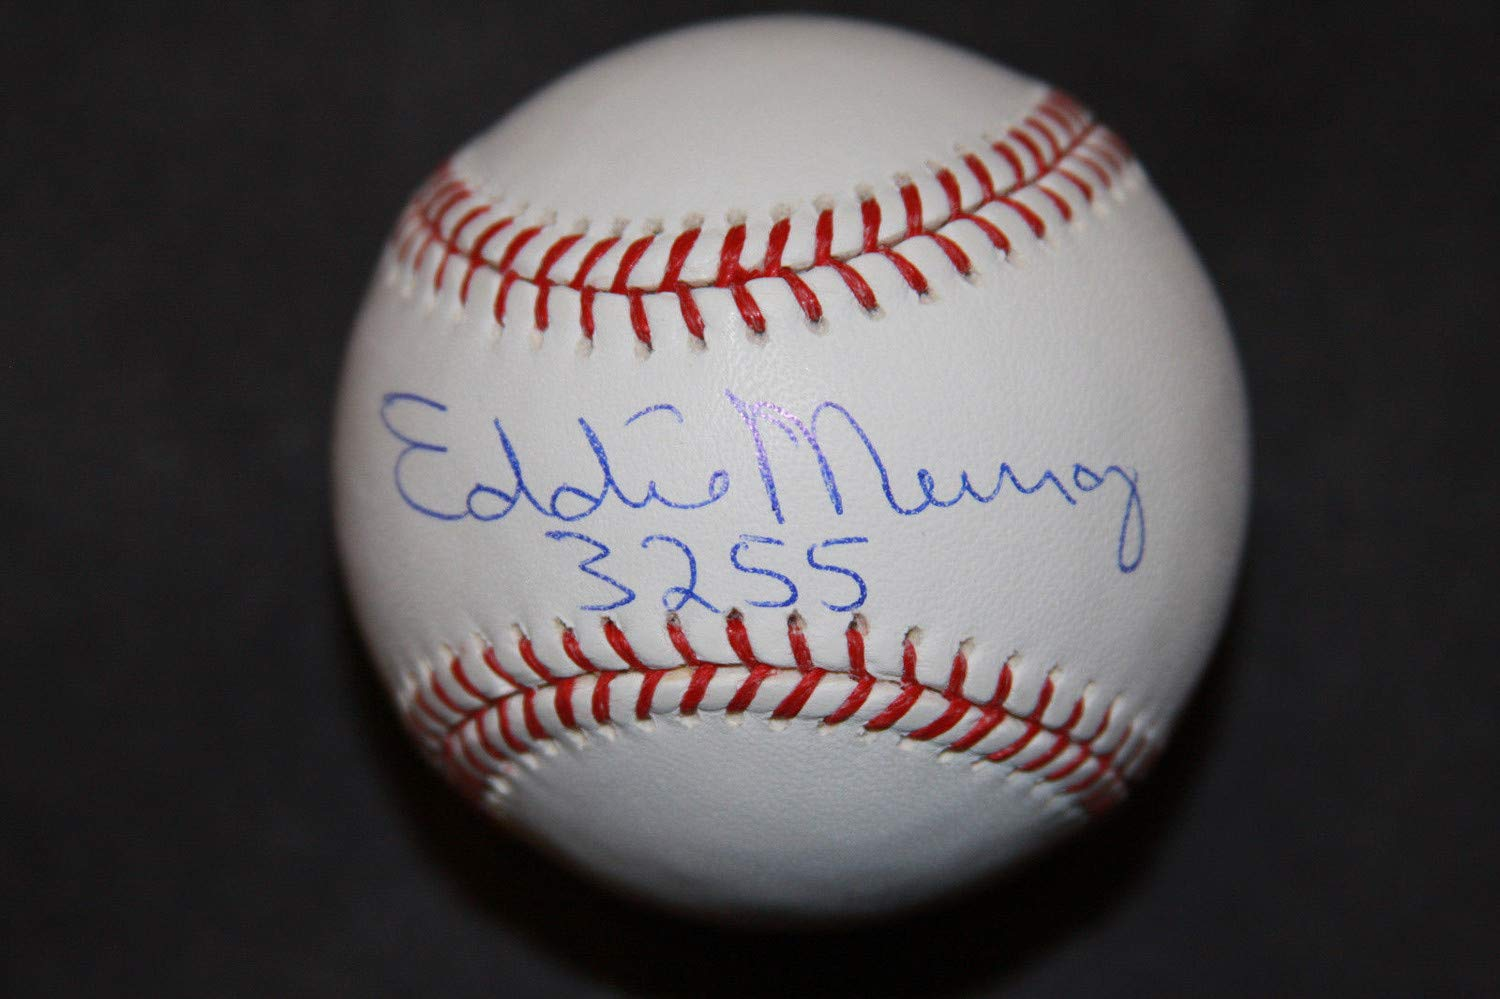 Eddie Murray Autographed Signed Roml Basebal 3255 Inscription PSA/DNA